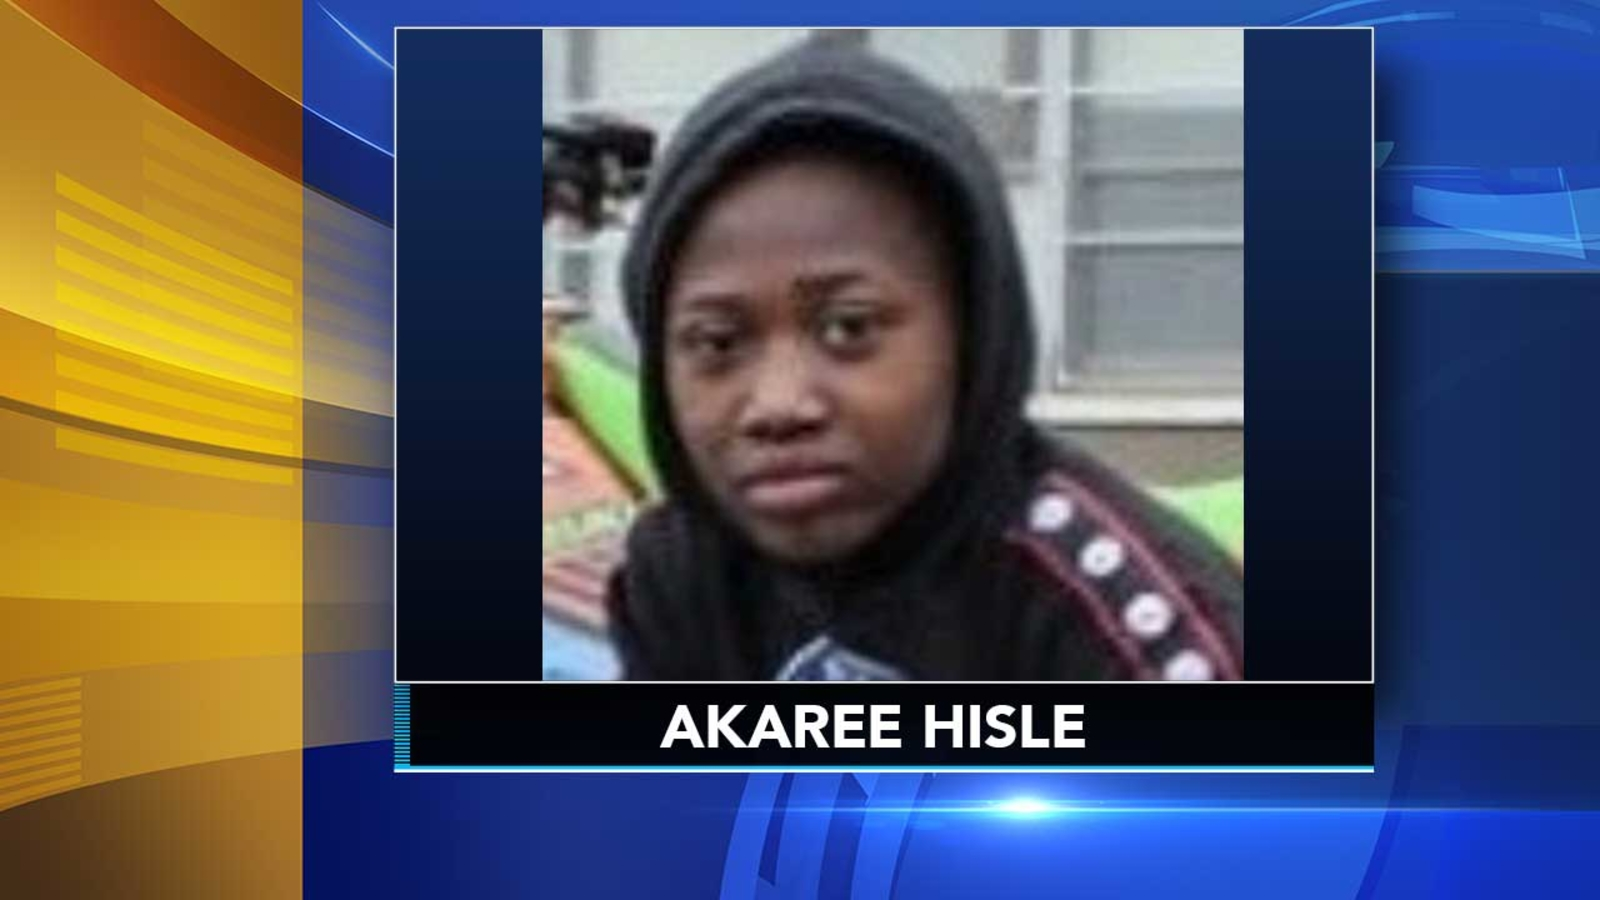 Philadelphia police searching for missing 12-year-old boy